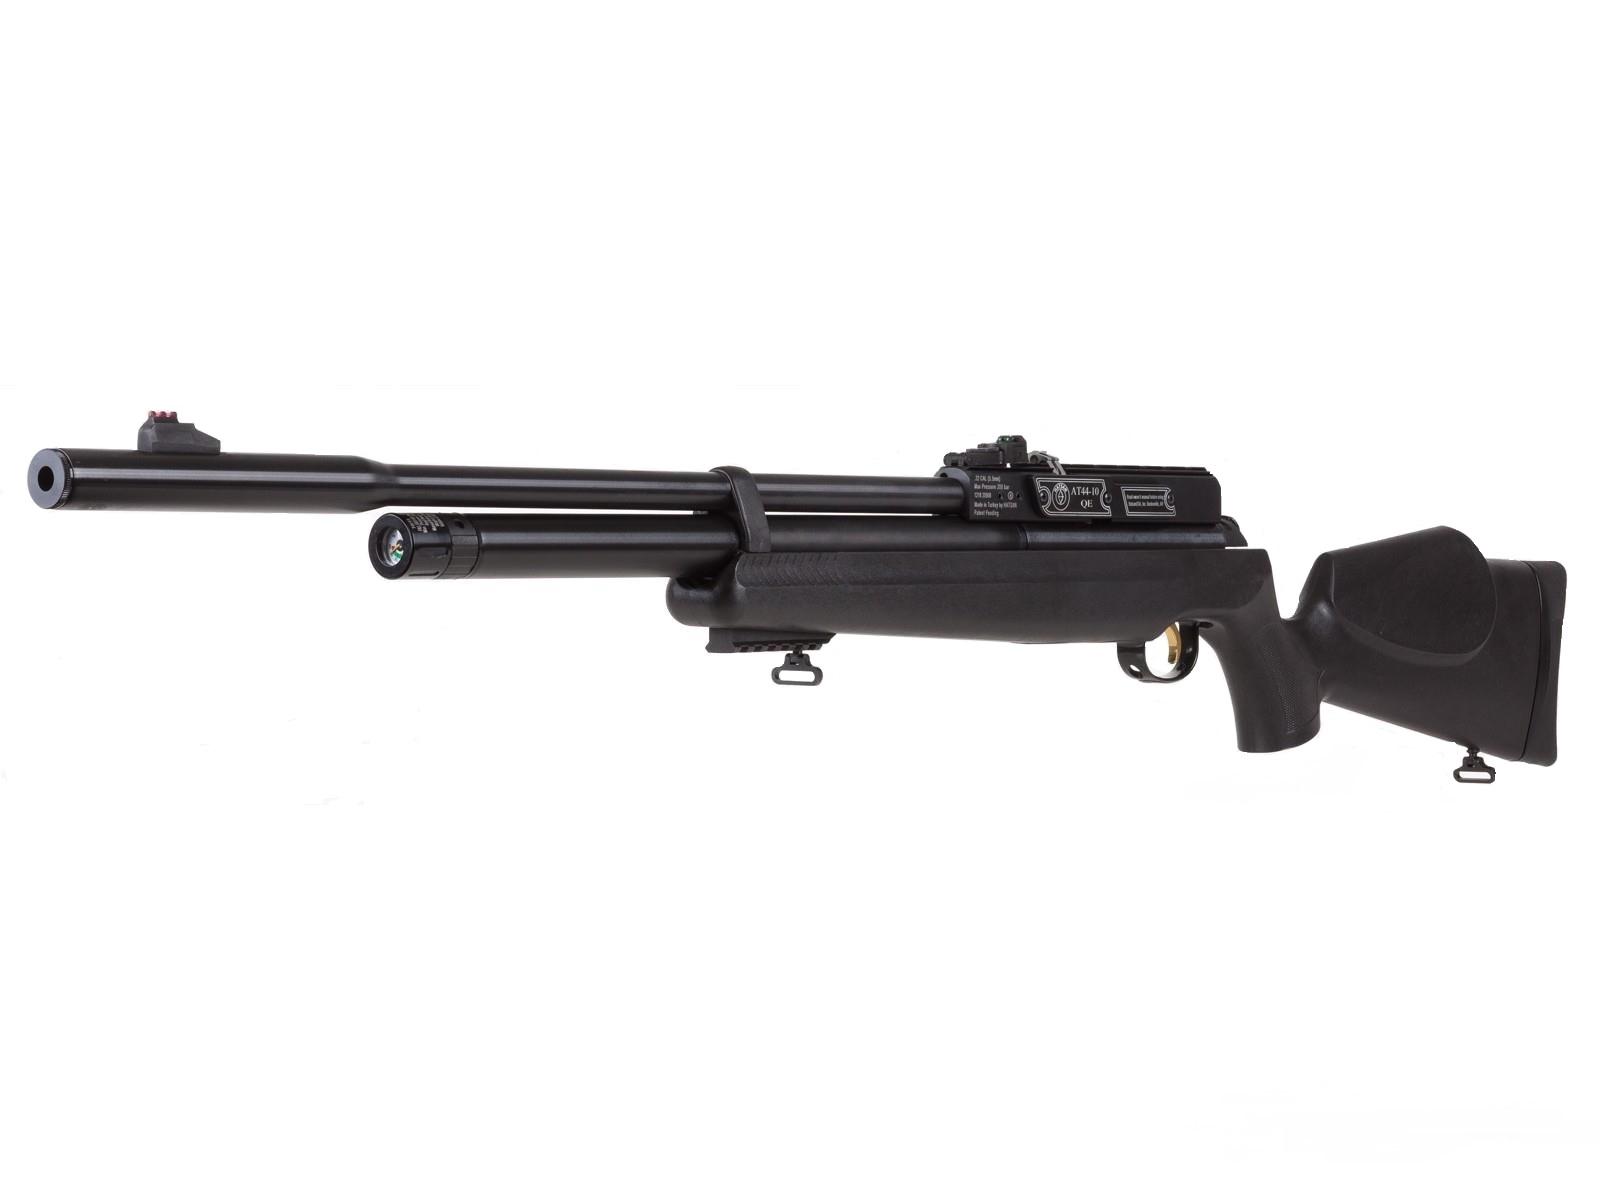 Hatsan AT44S10 Long .25 cal Open Sight Air Rifle